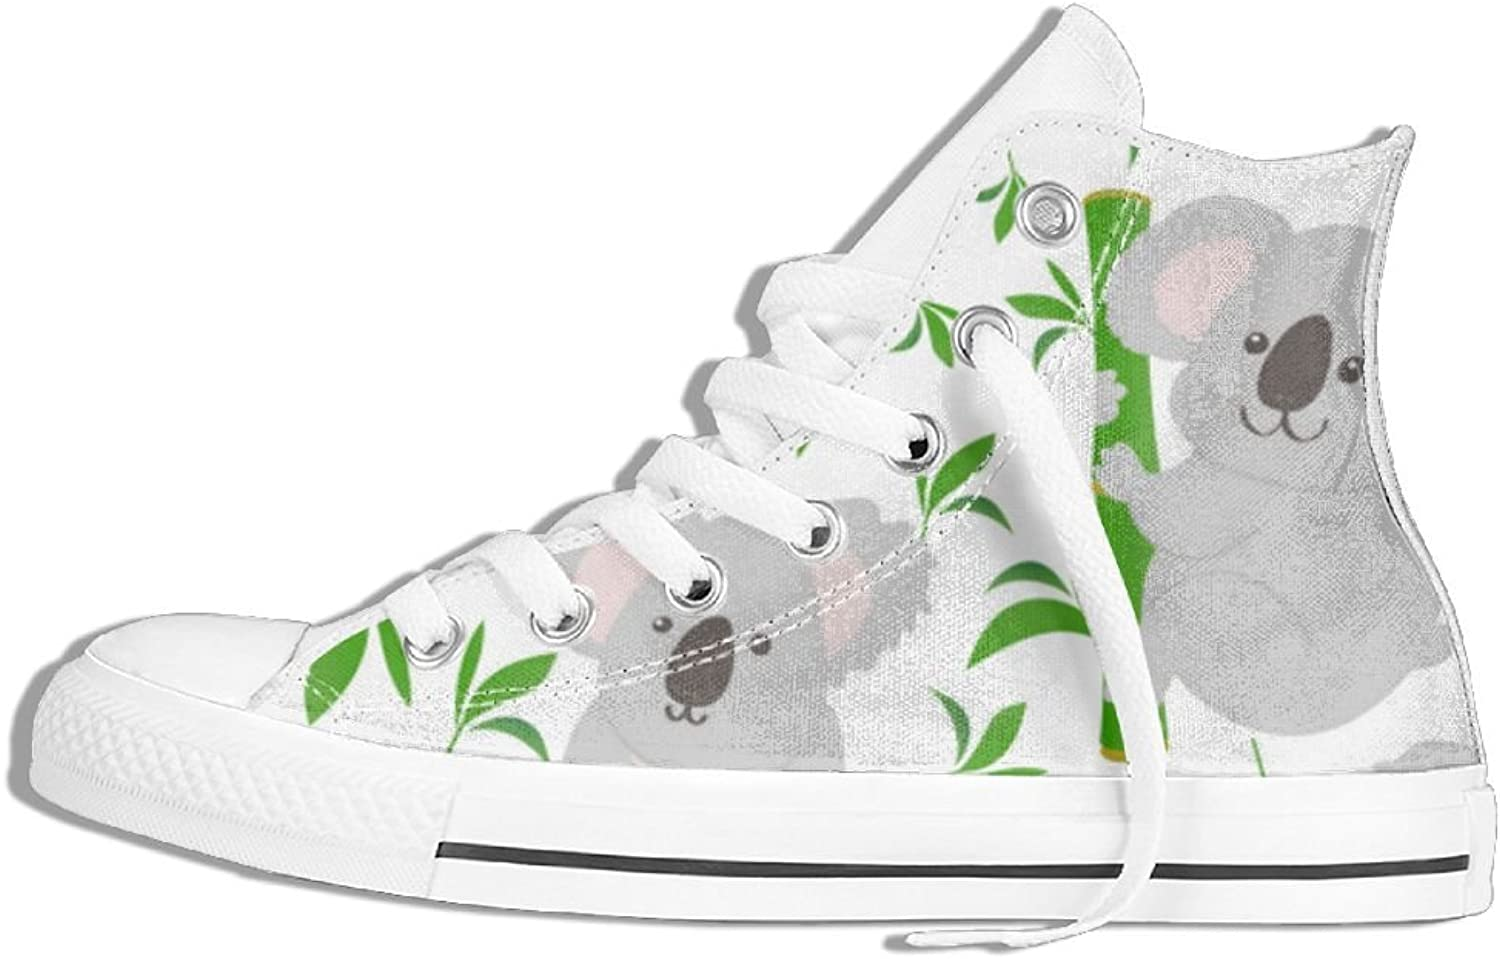 Womens Hi-Top Canvas Sneakers Sloth Hug Tree Flat Anti Skid Walking Trainers shoes